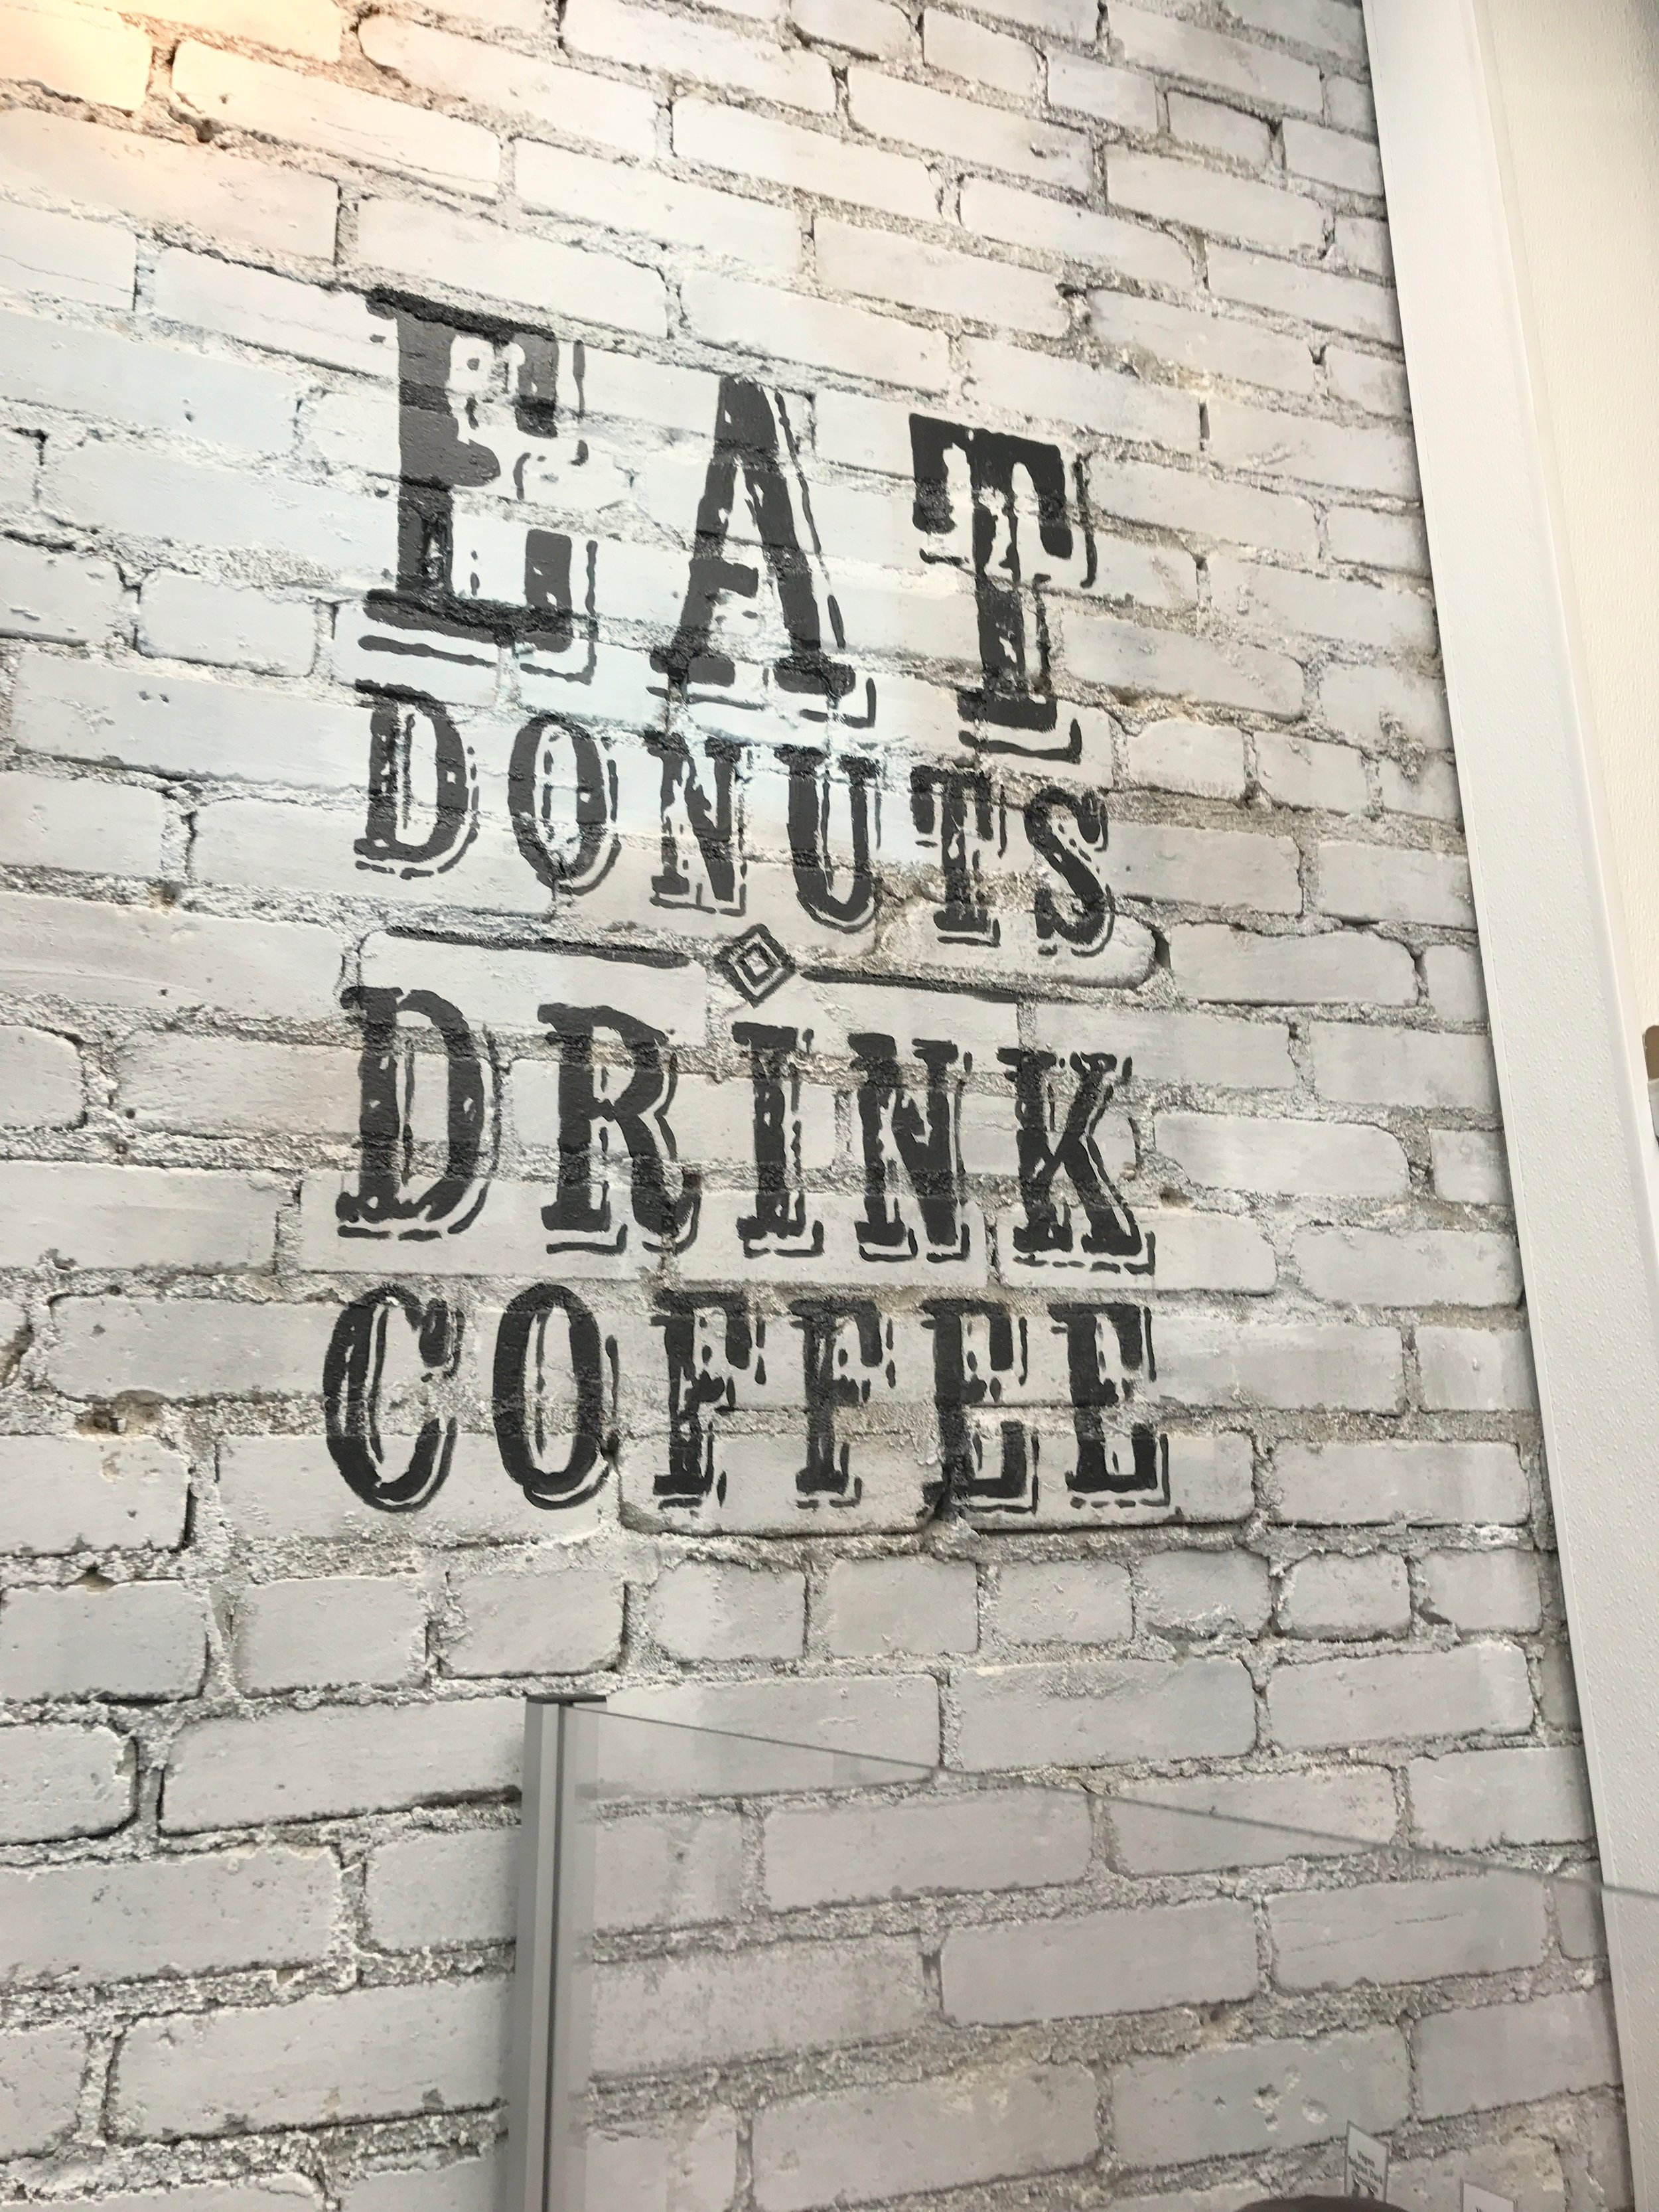 A little weekly inspiration from the wall art in Union Square Donuts